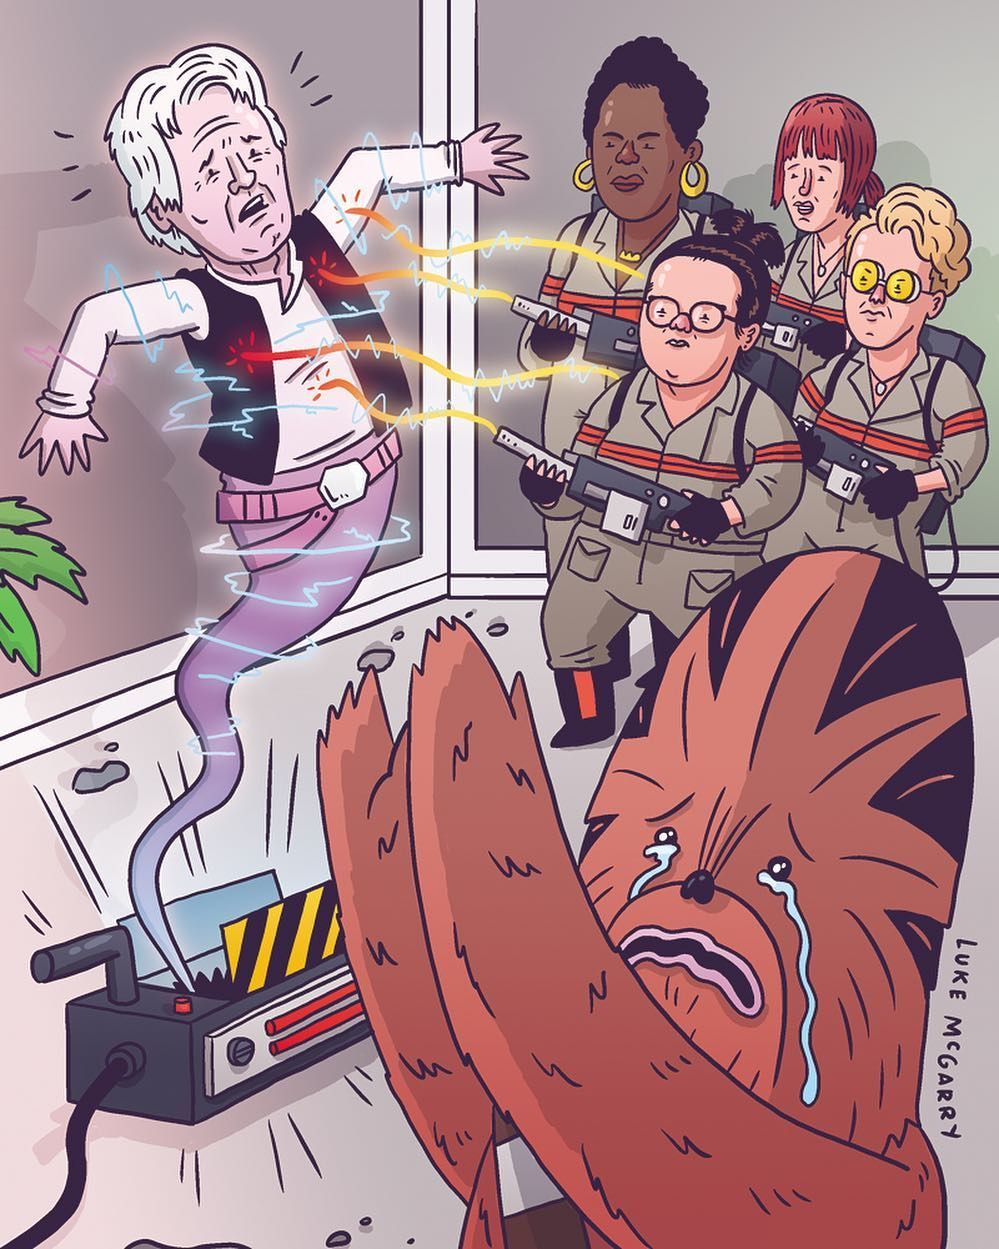 Chewie's not too crazy about the new Ghostbusters either (Sad Chewie by @lukeymcgarry) #sadchewie #chewbacca #hansolo #starwars #ghostbusters #theyaintfraidofhansghost #theafterlife #notagain #toosoon #starwarsspoilers by superdeluxe